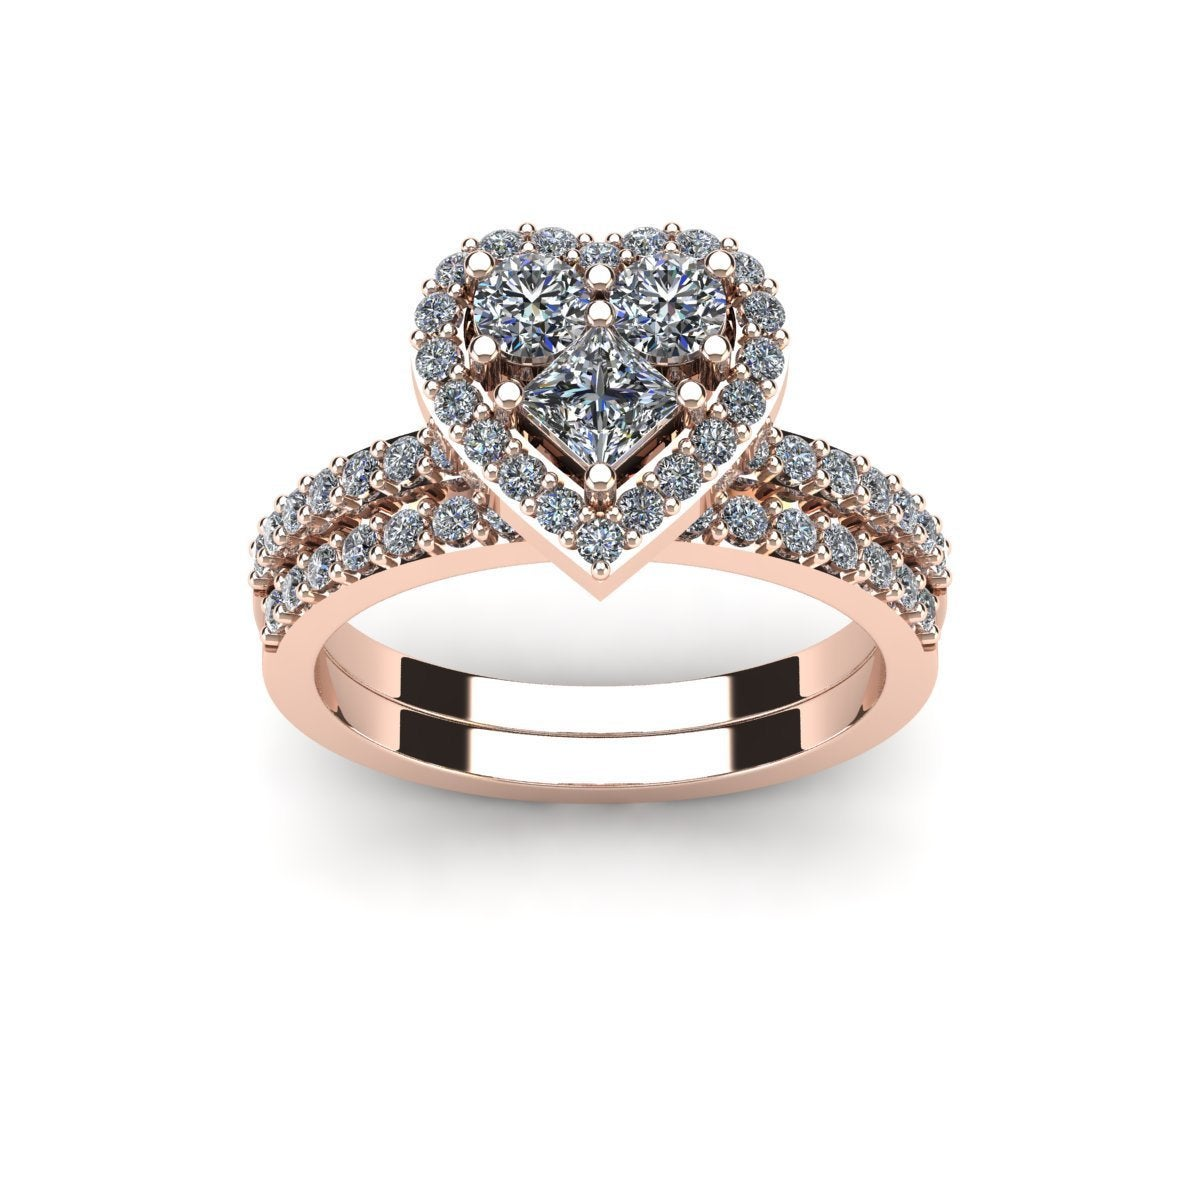 1 Carat Heart Shaped Bridal Engagement Ring Set In 14k Rose Gold White I J On Free Shipping Today 11531453